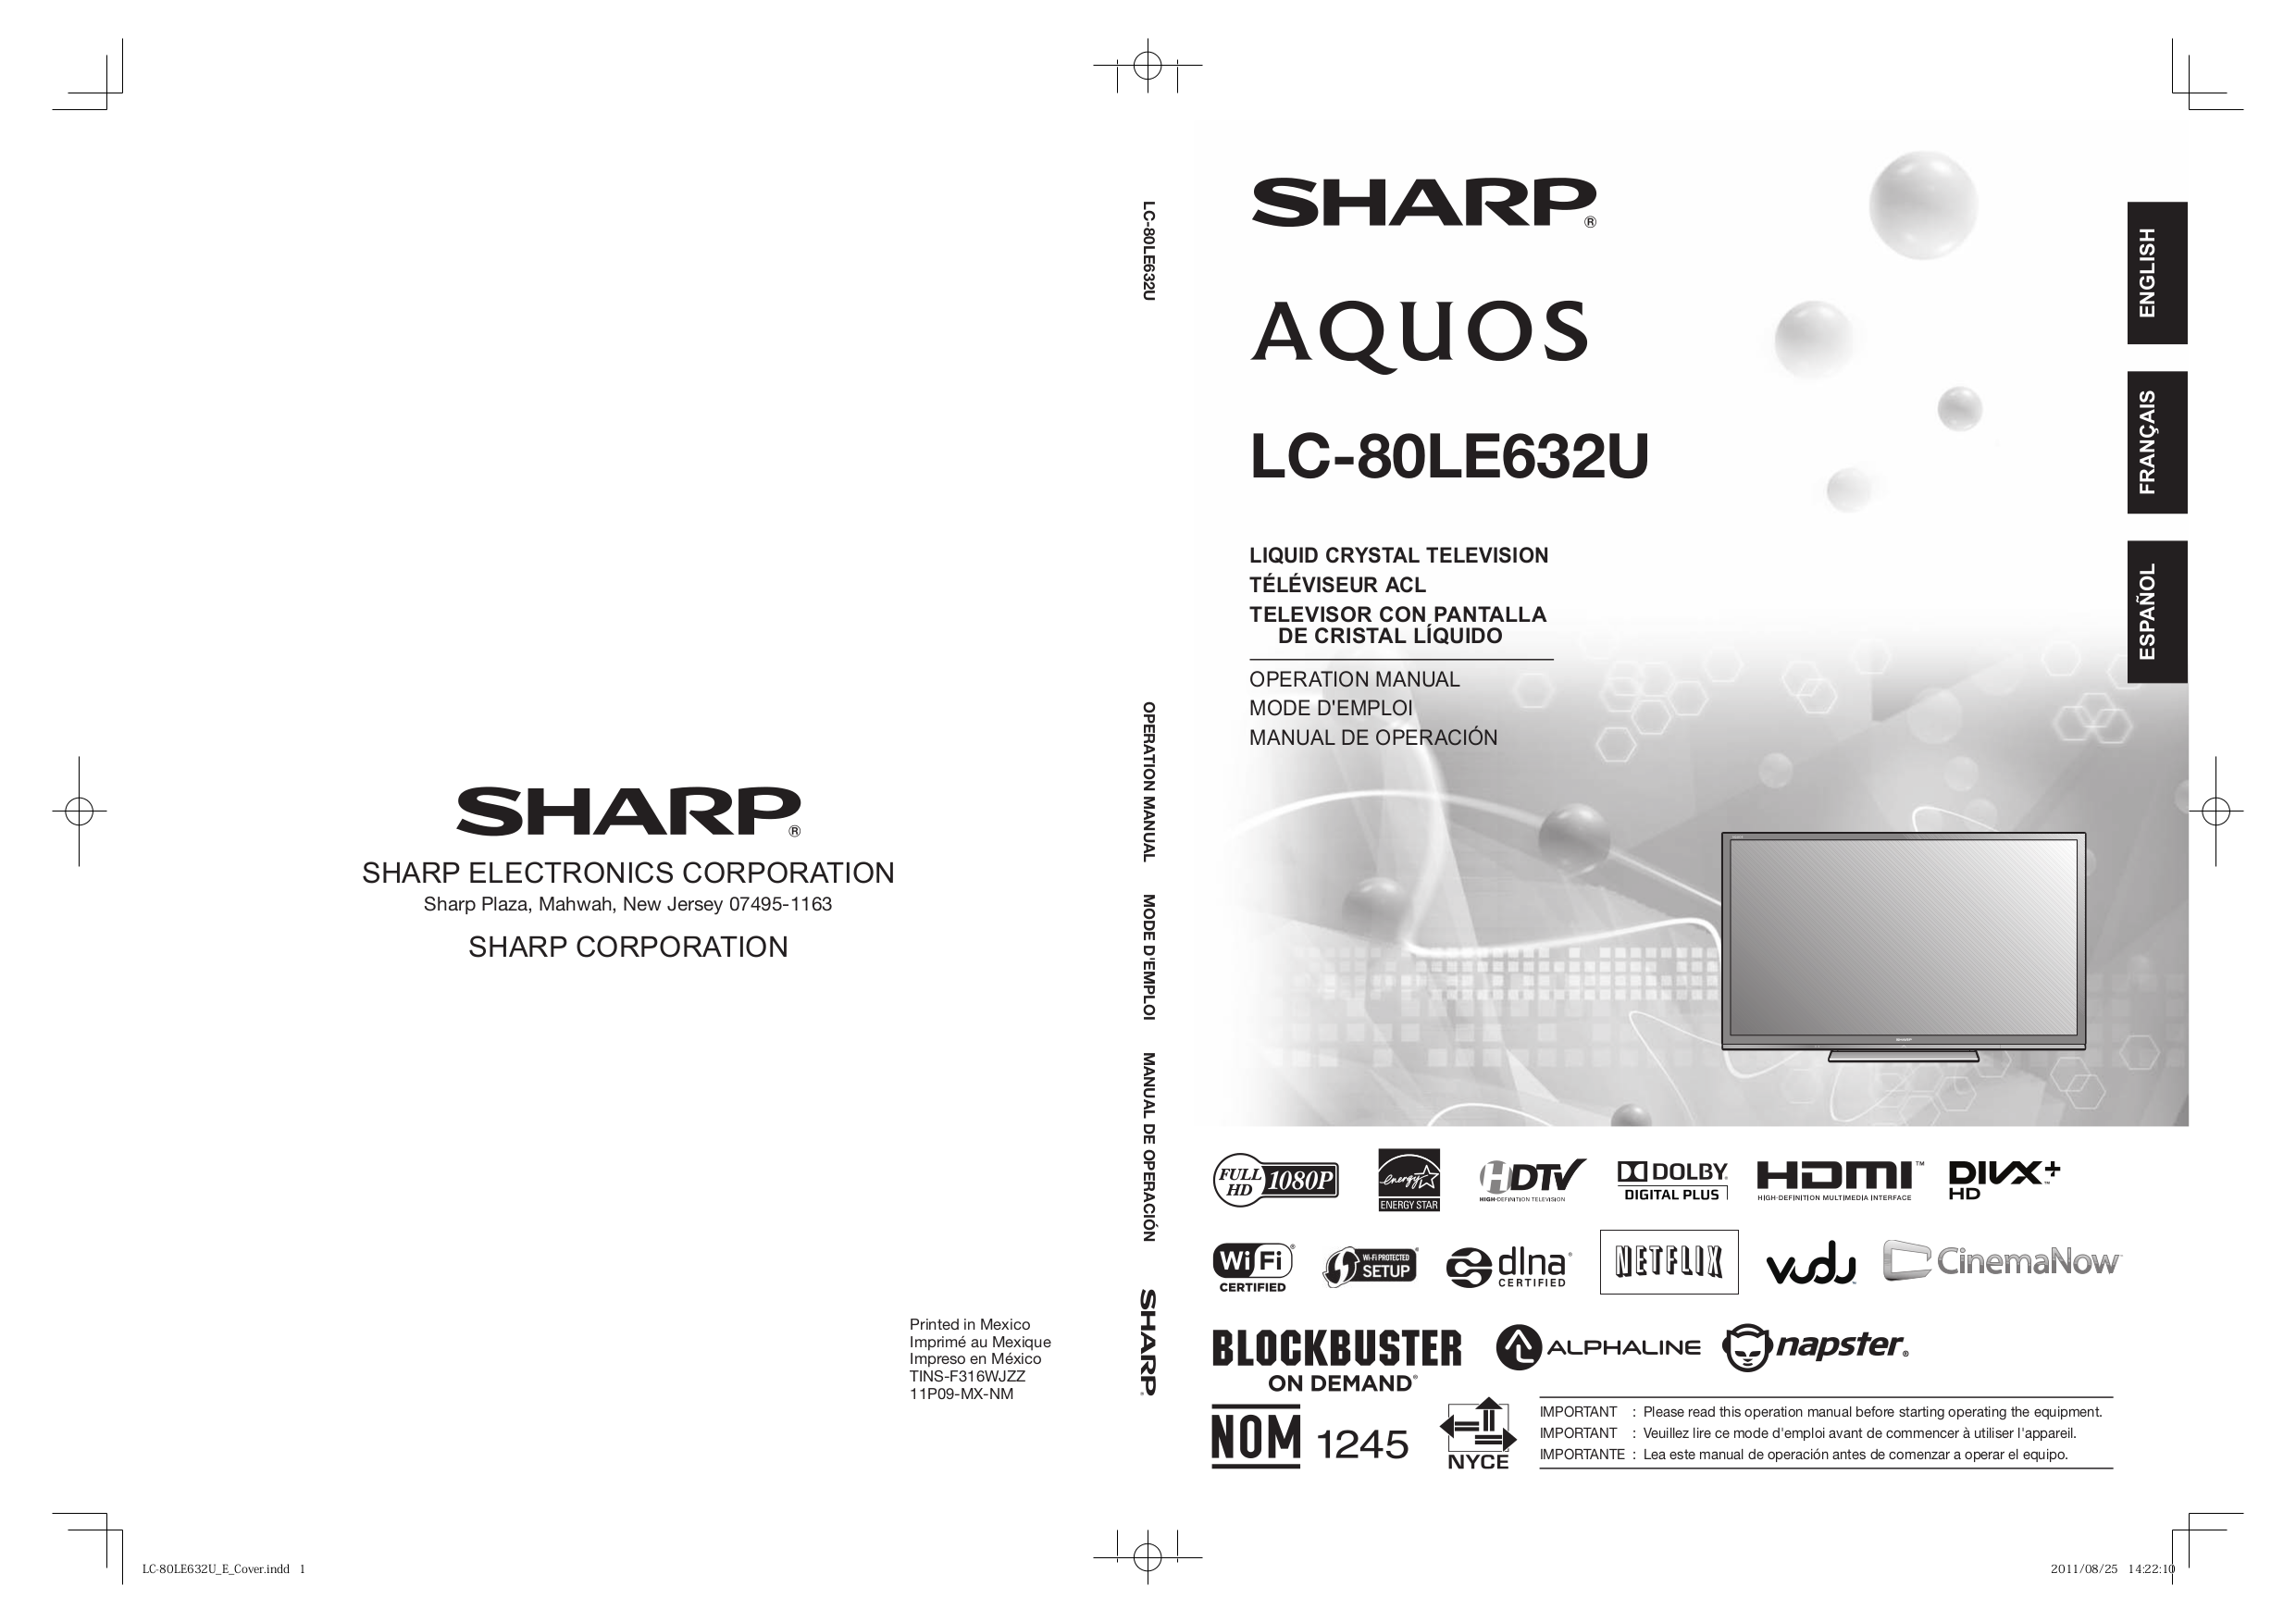 download free pdf for sharp aquos lc 80le632u lcd tv manual rh umlib com sharp lc-80le632u manual sharp aquos lc-80le632u manual